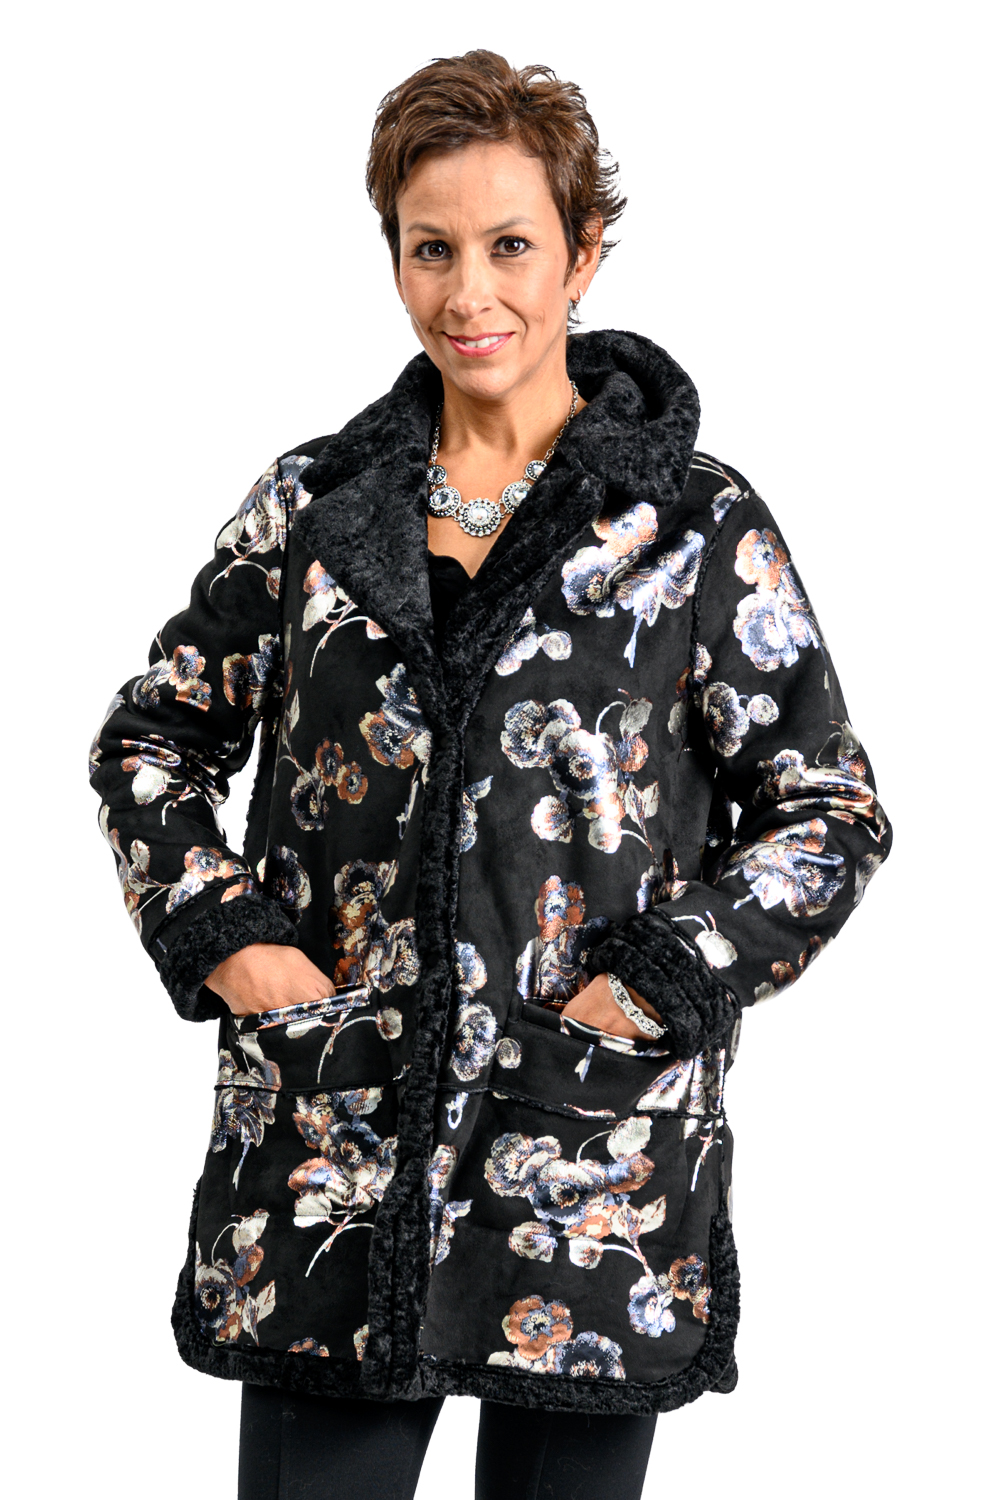 W43 2 Nikki Jones Faux Fur jacket